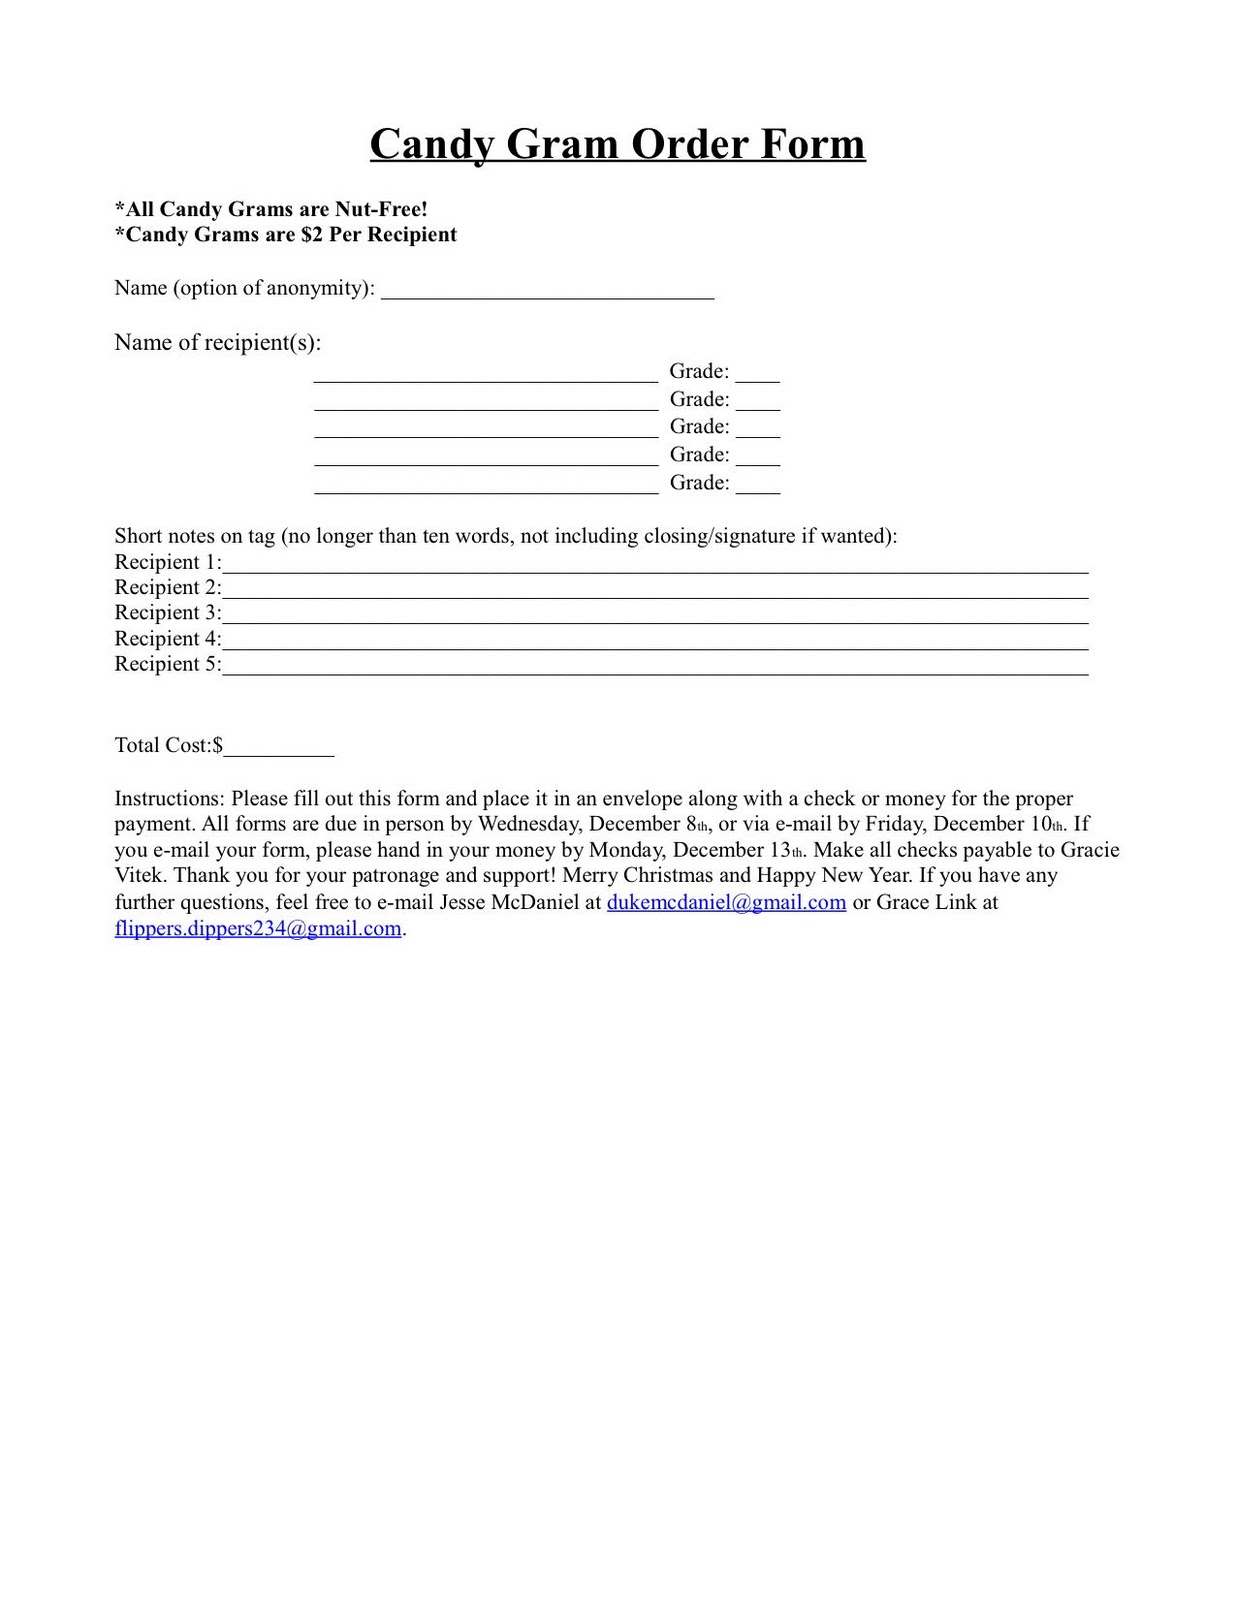 Candy Gram Order Form Template